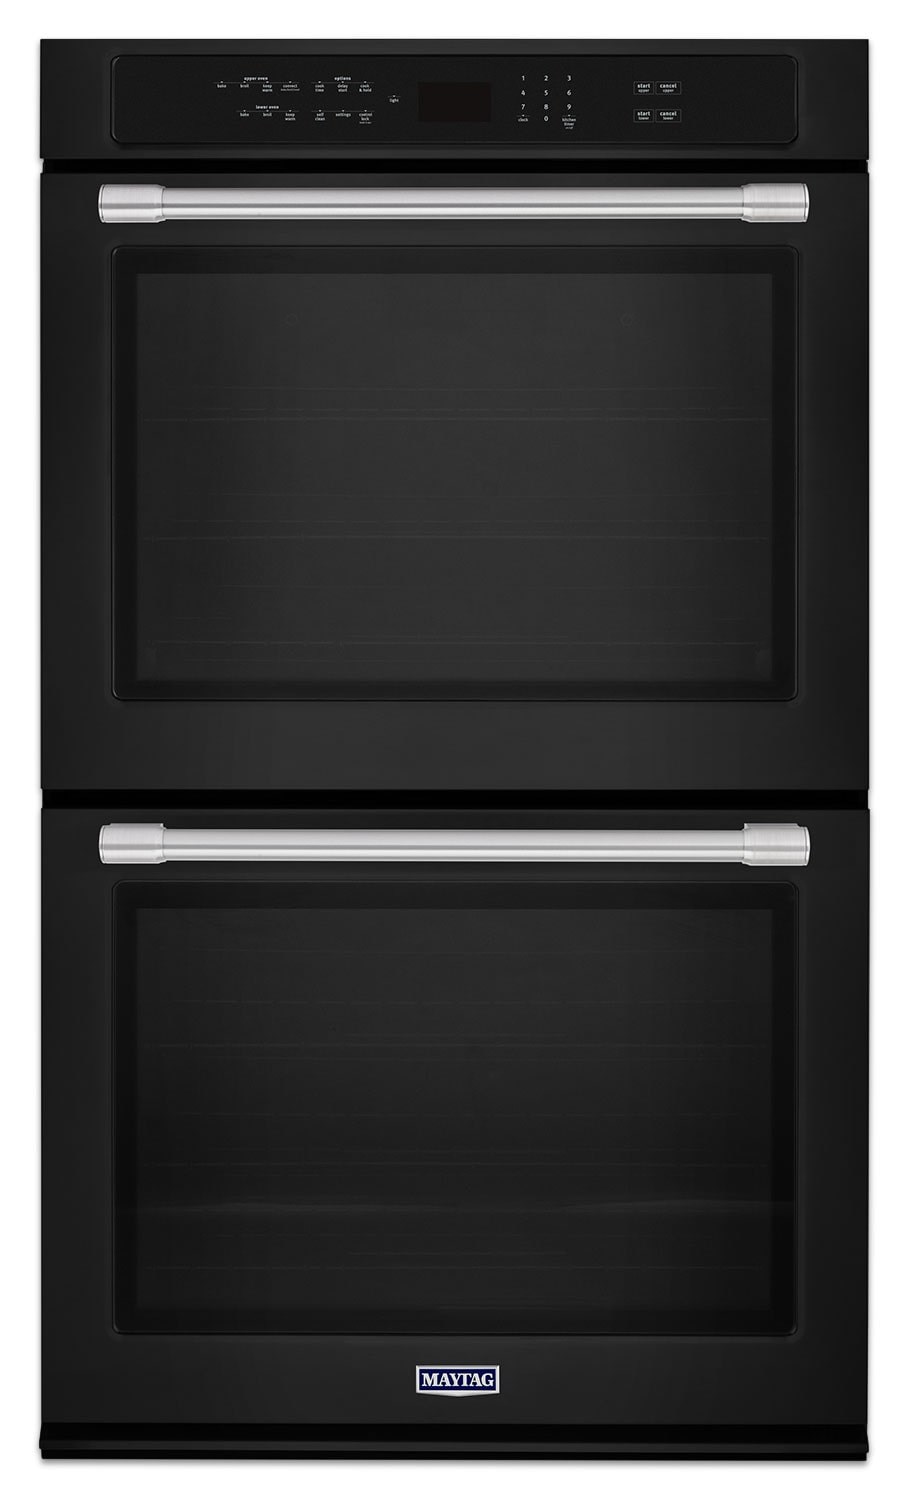 Cooking Products - Maytag Black Electric Double Wall Oven (10.0 Cu. Ft.) - MEW9630FB